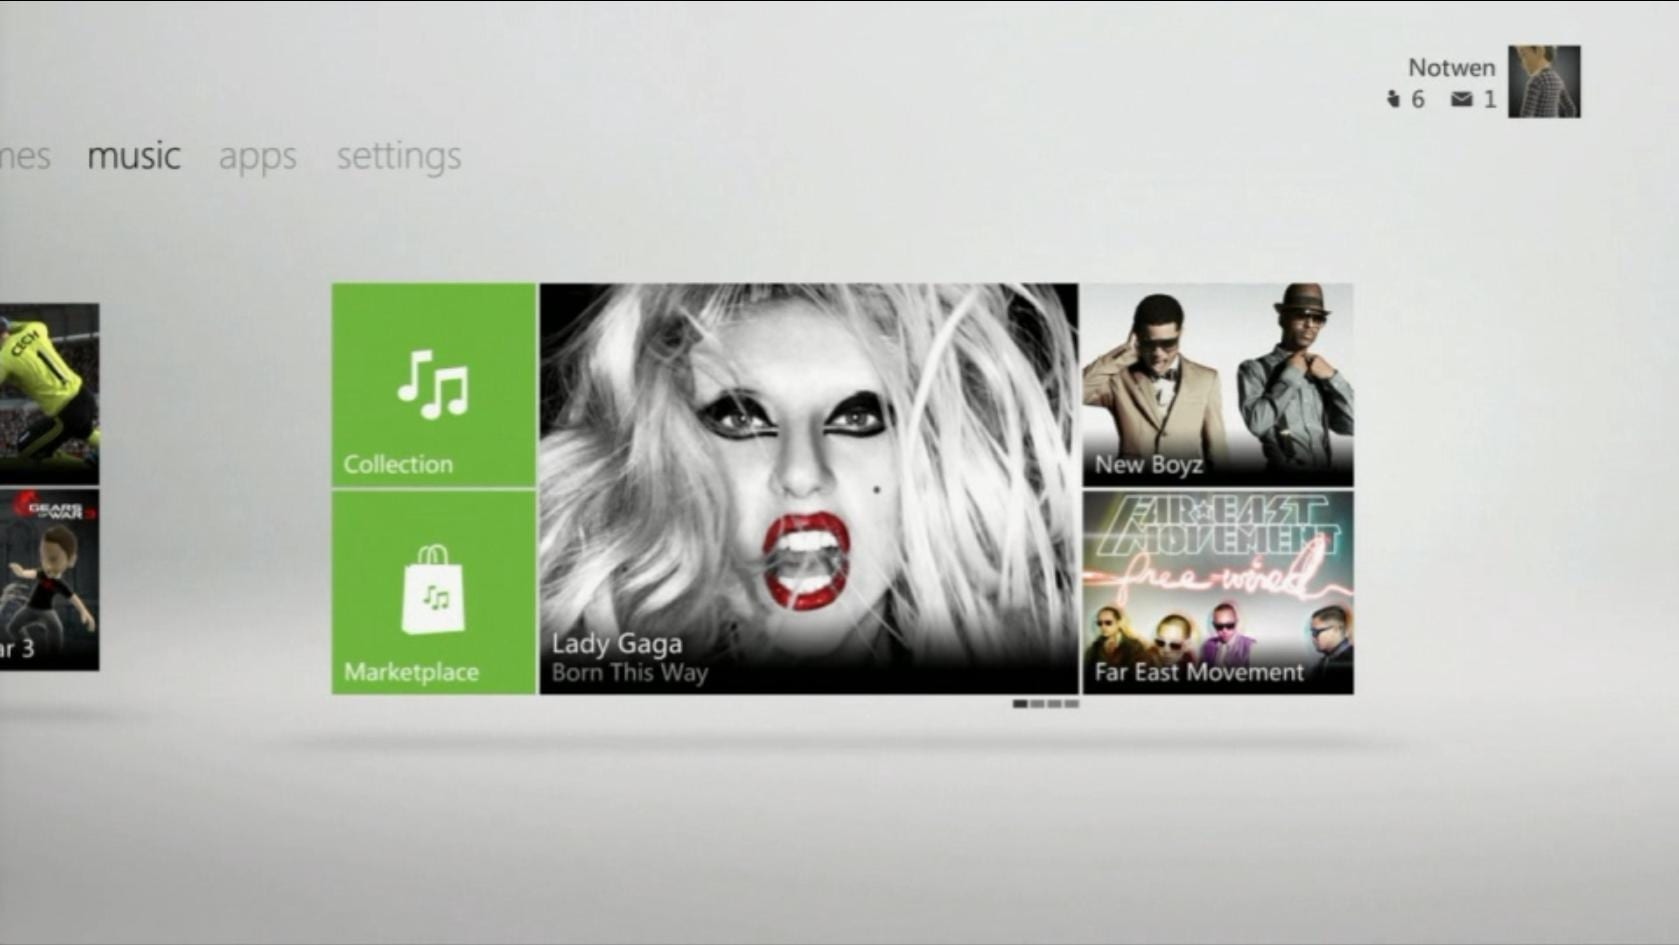 E3 2012: Microsoft unleashes xbox music to compete with apple's itunes